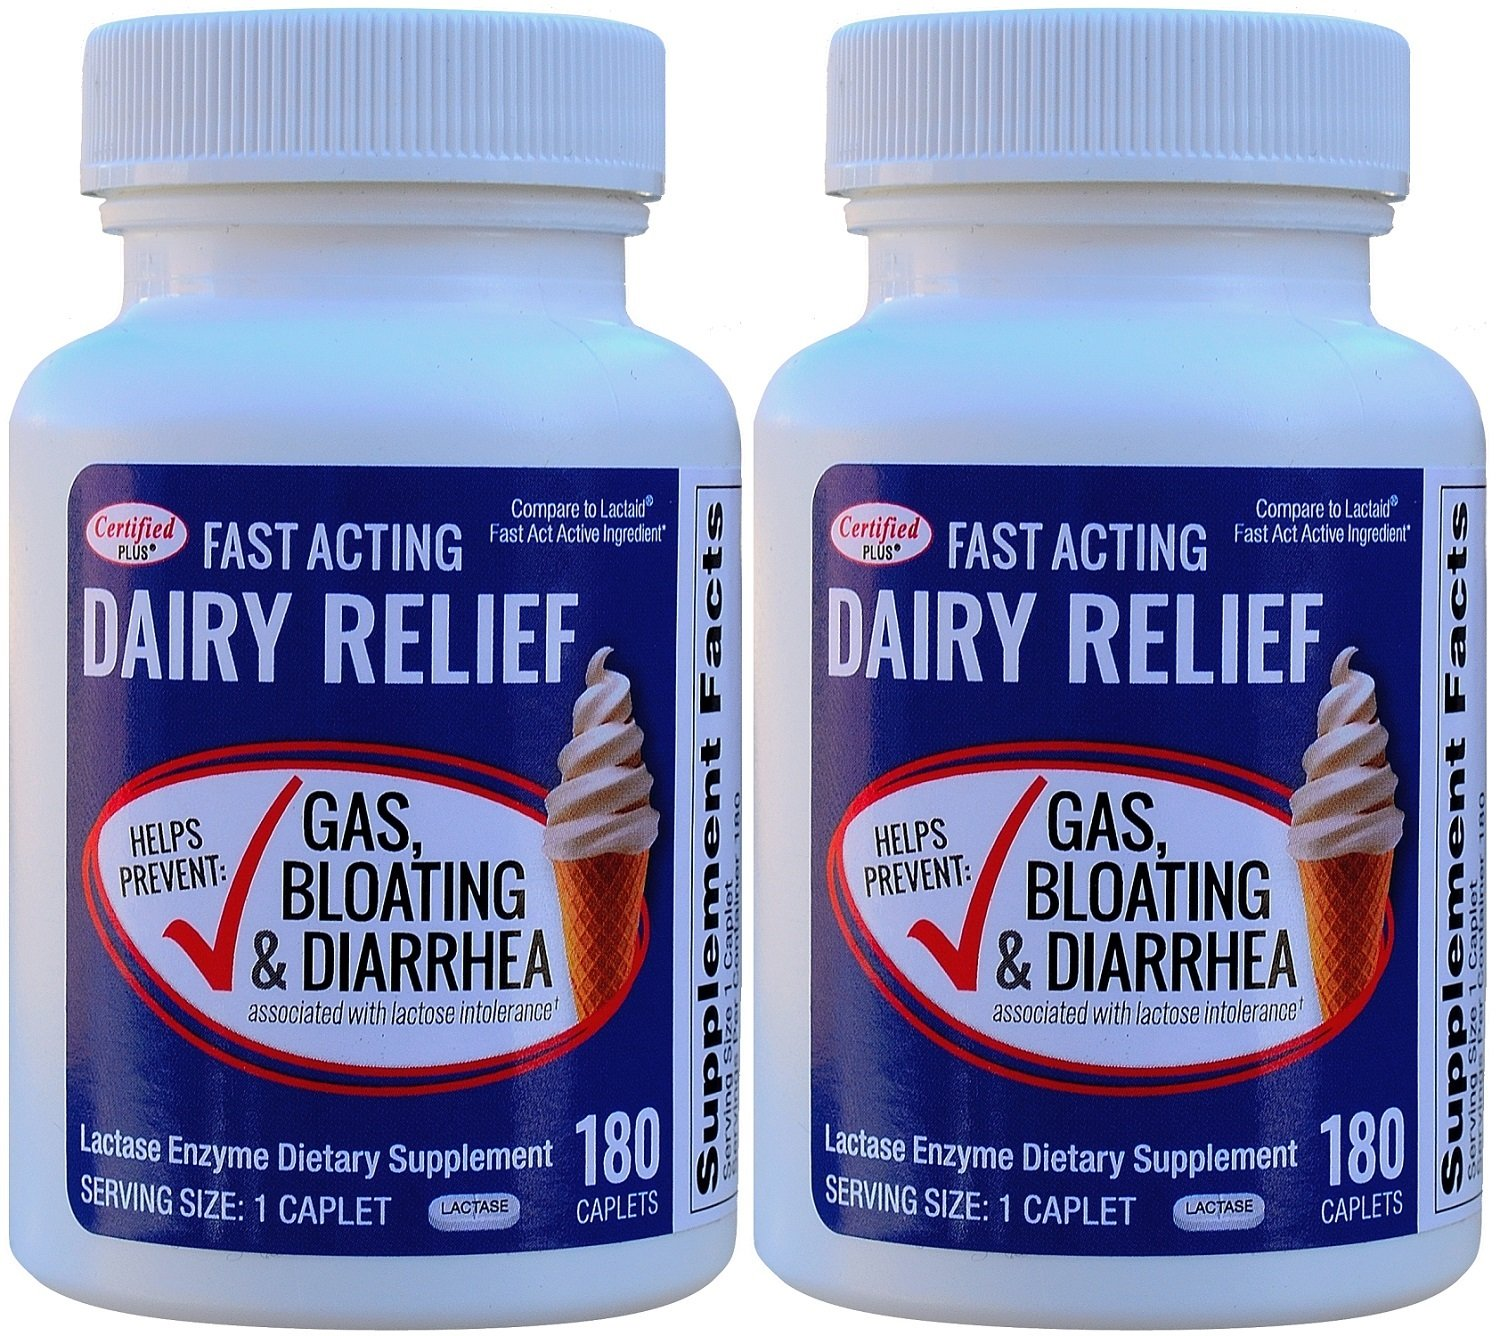 Fast Acting Lactase 360 Caplets Generic Lactaid Fast Act 9000 FCC Units per Caplet by Certified Plus